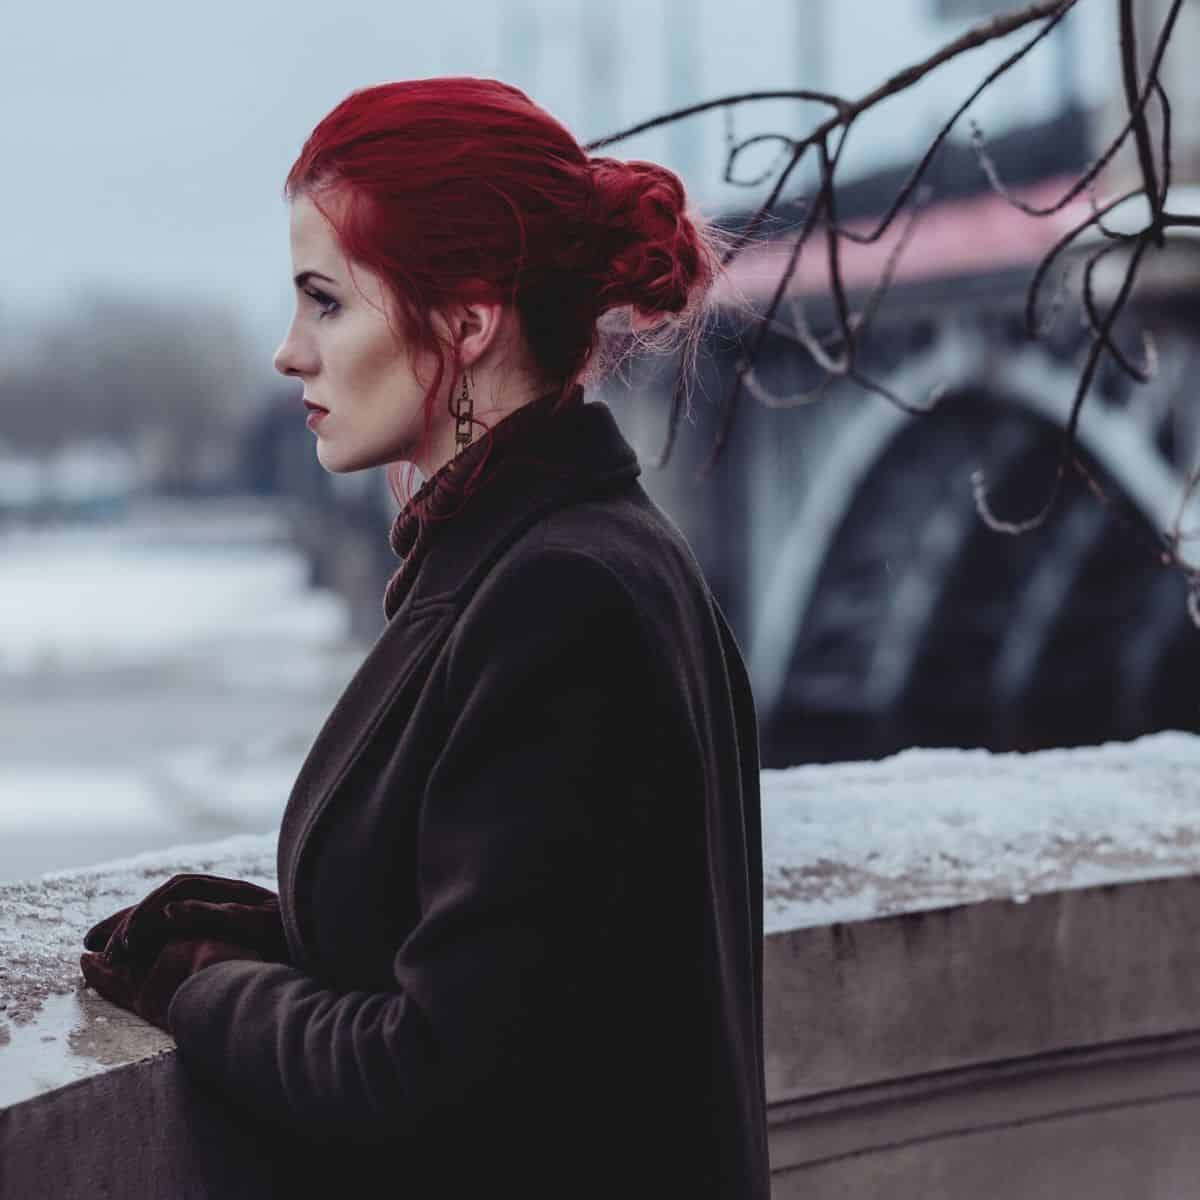 woman with bright red hair appears to be pondering